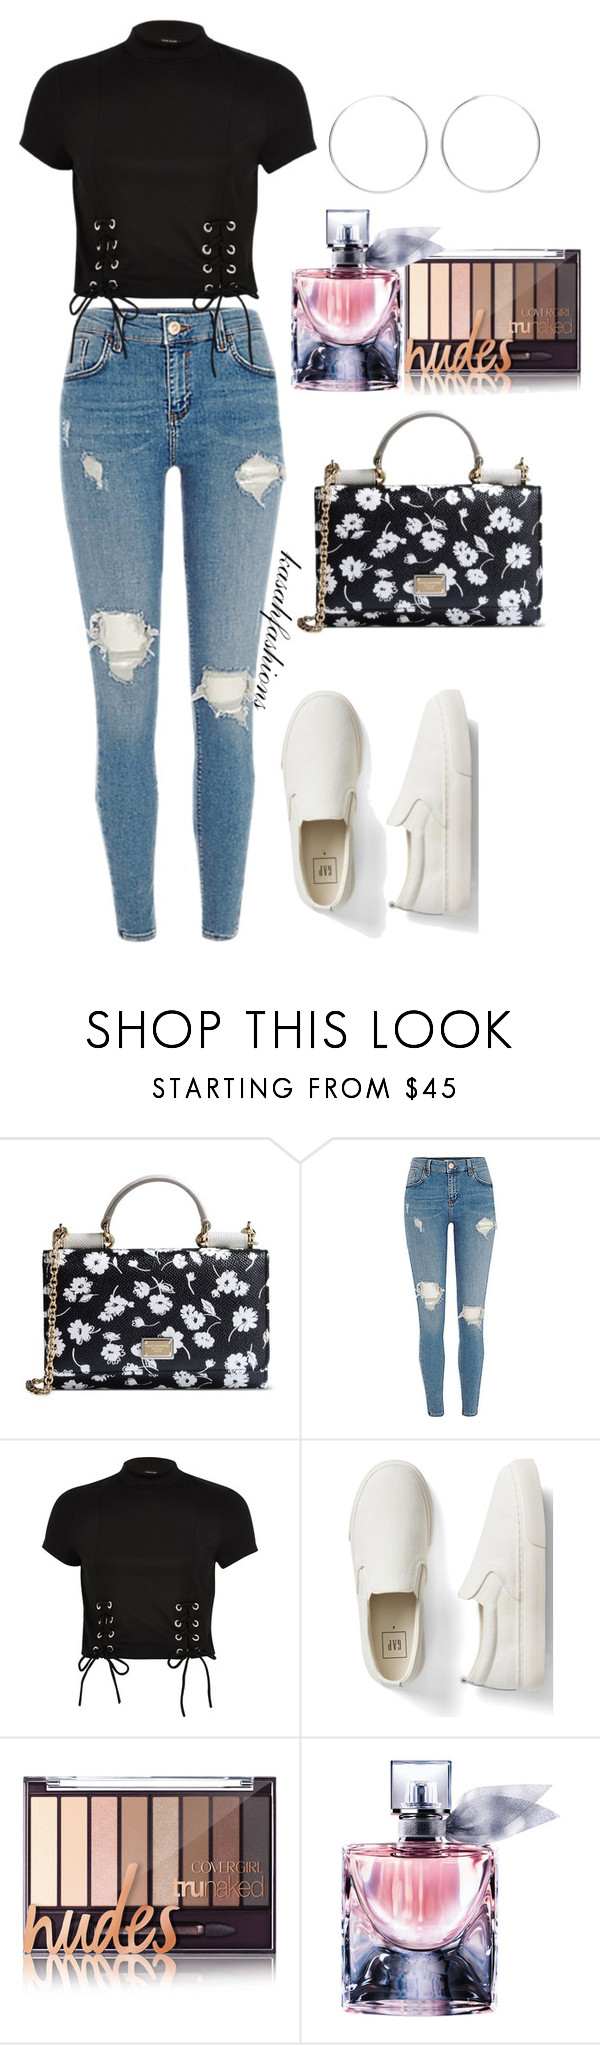 """""""casually perfect with floral bag"""" by kasahfashions on Polyvore featuring Dolce&Gabbana, River Island, Gap and Lancôme"""